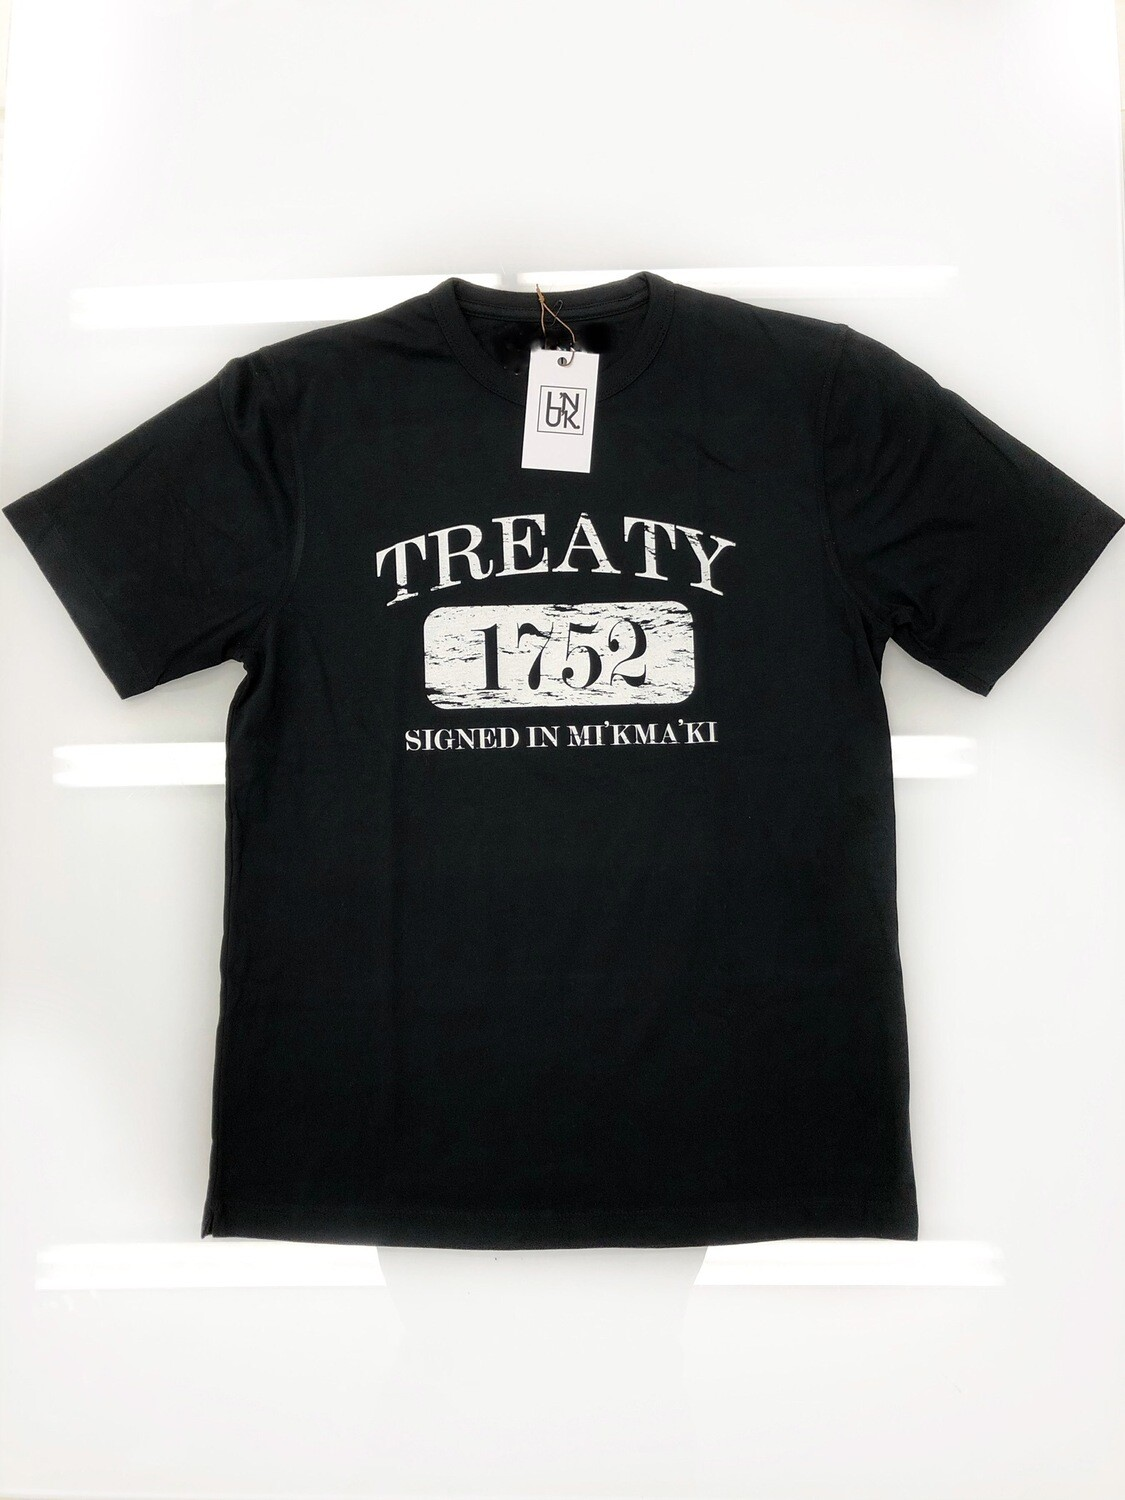 TREATY 1752 T-SHIRT